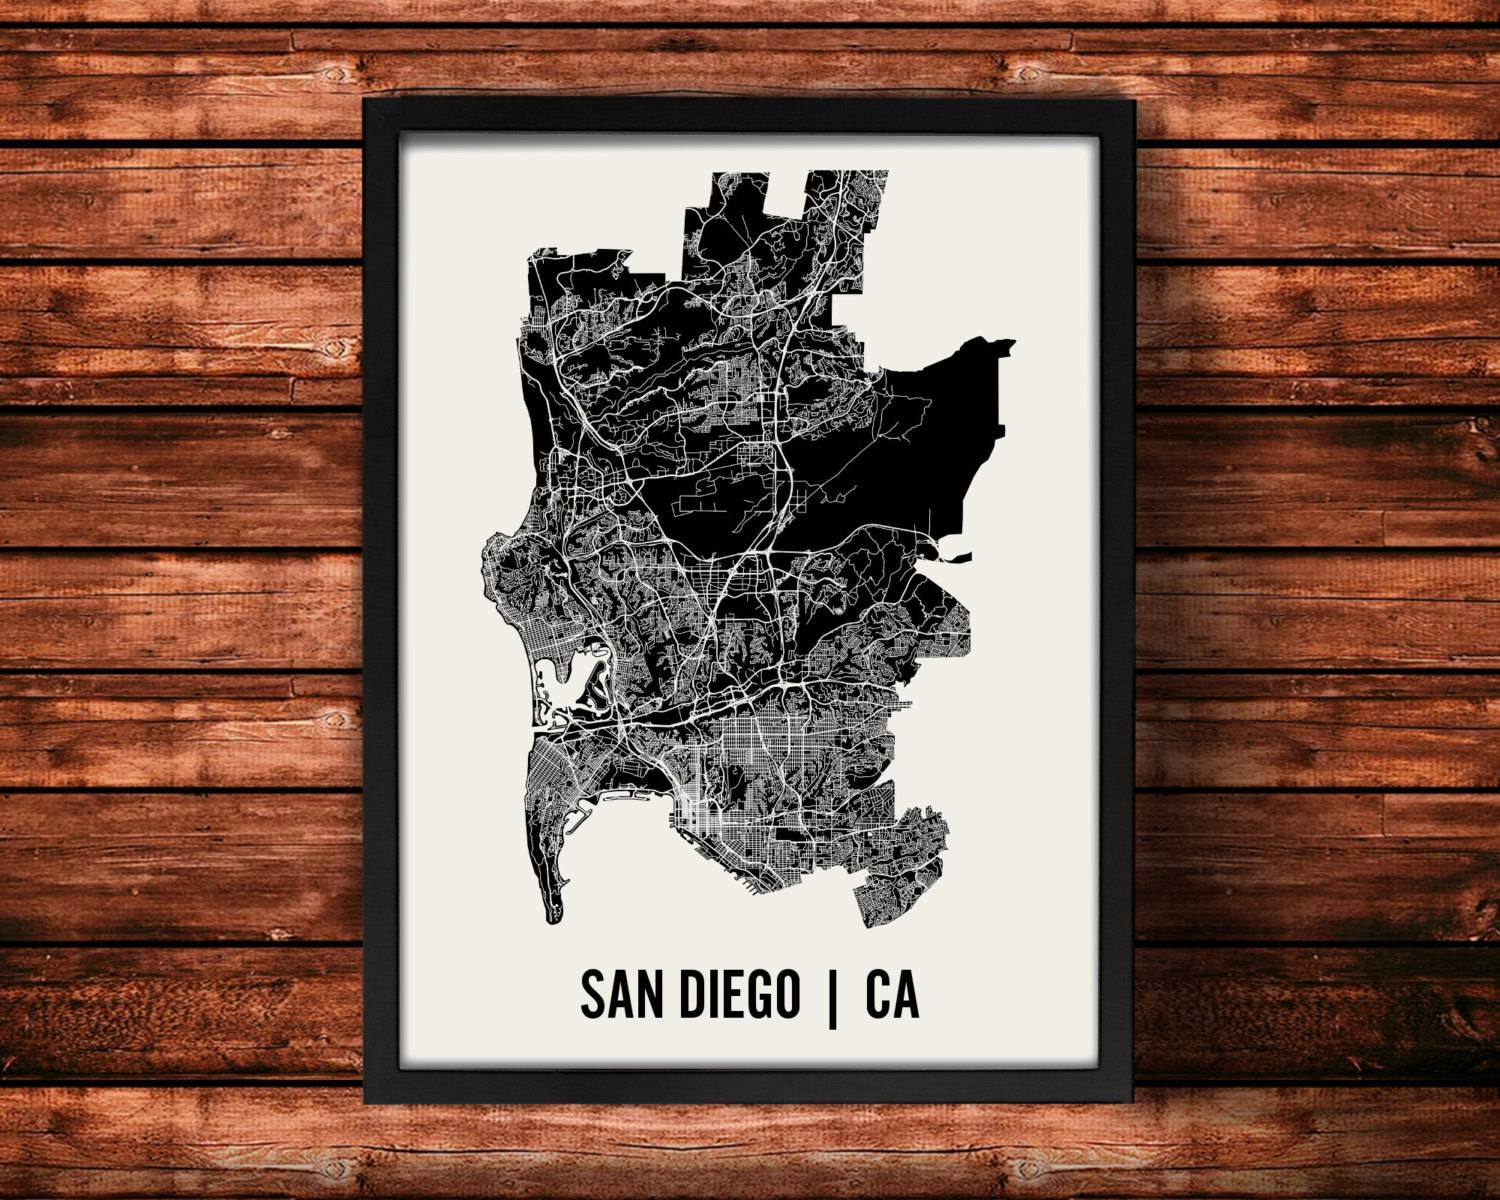 San Diego Map Art Print San Diego Print San Diego Art Throughout Most Up To Date Map Wall Art Prints (View 17 of 20)